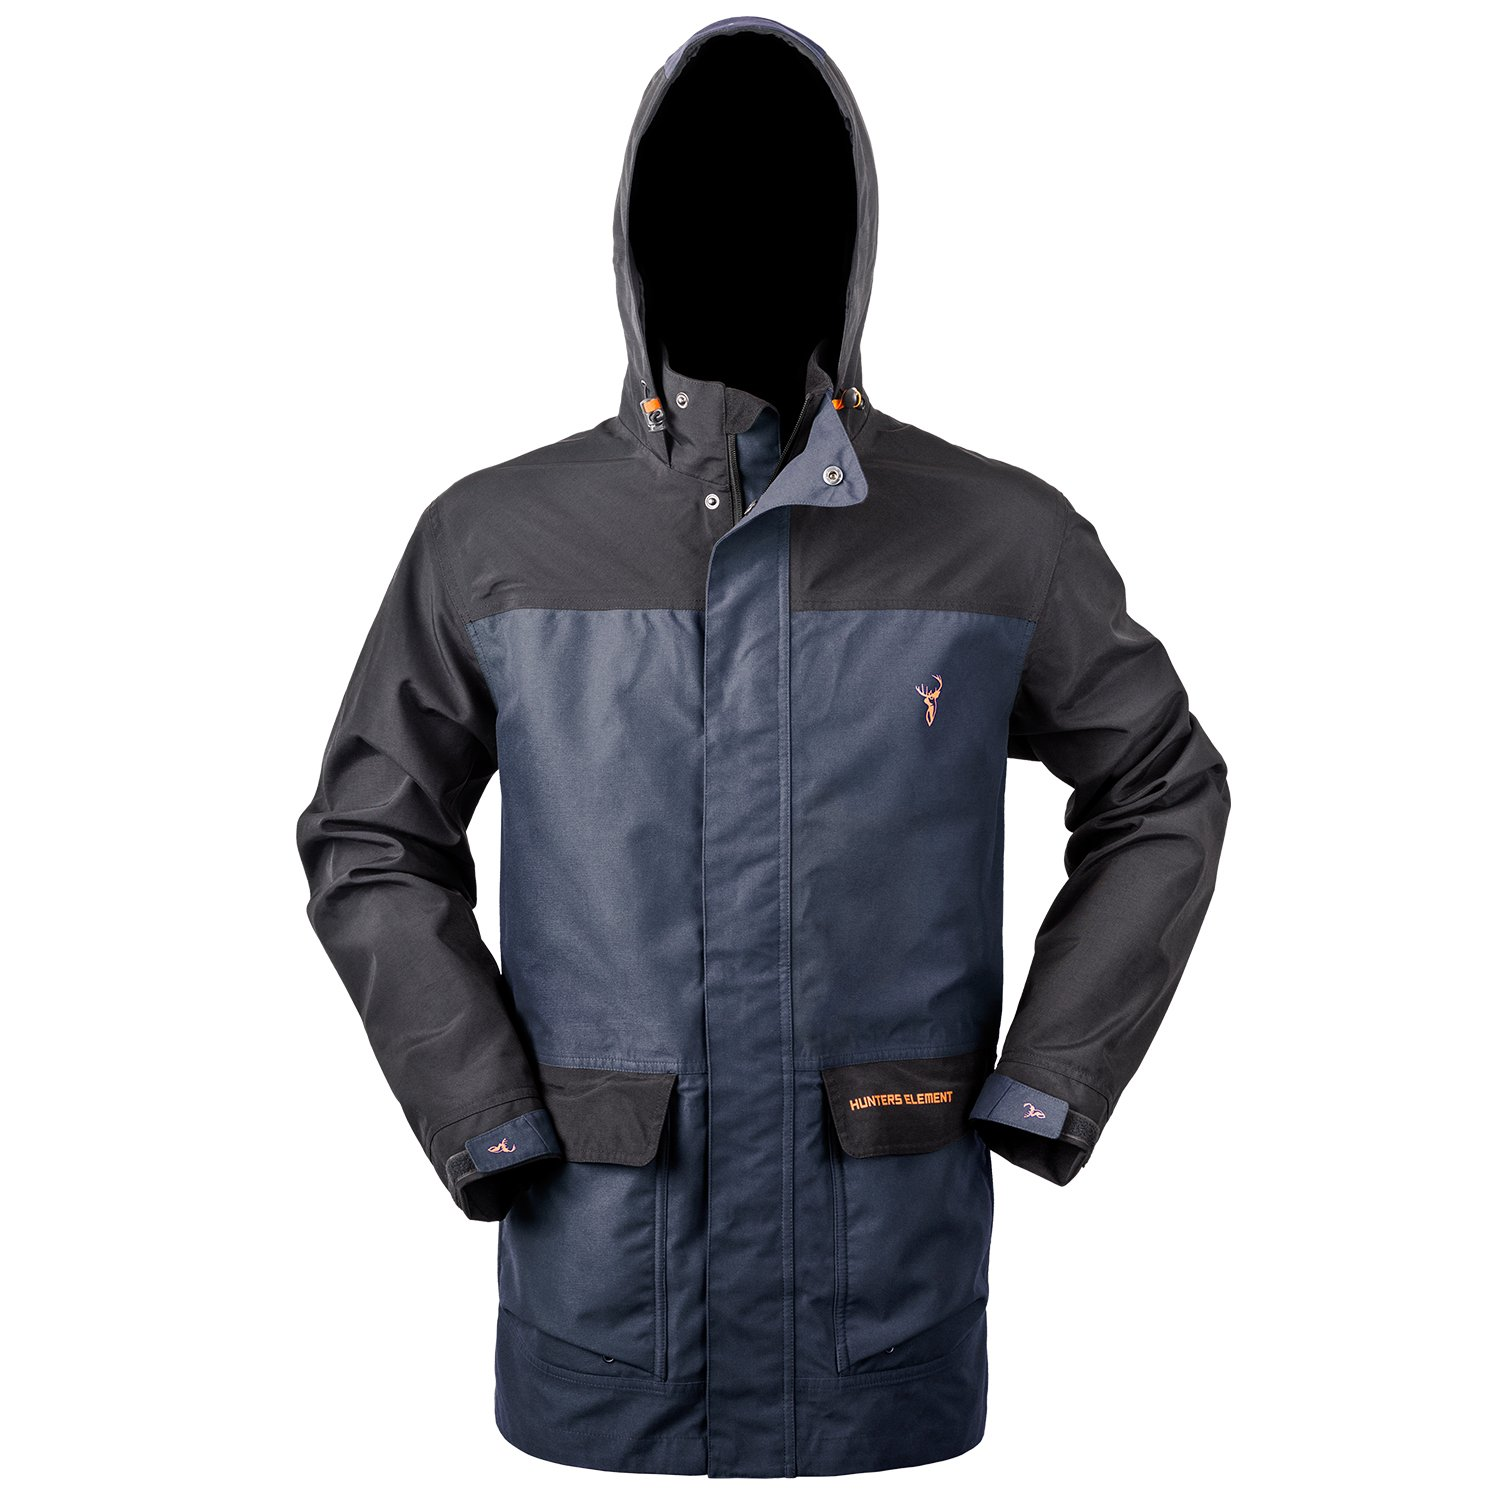 Hunters Element Summit Jacket